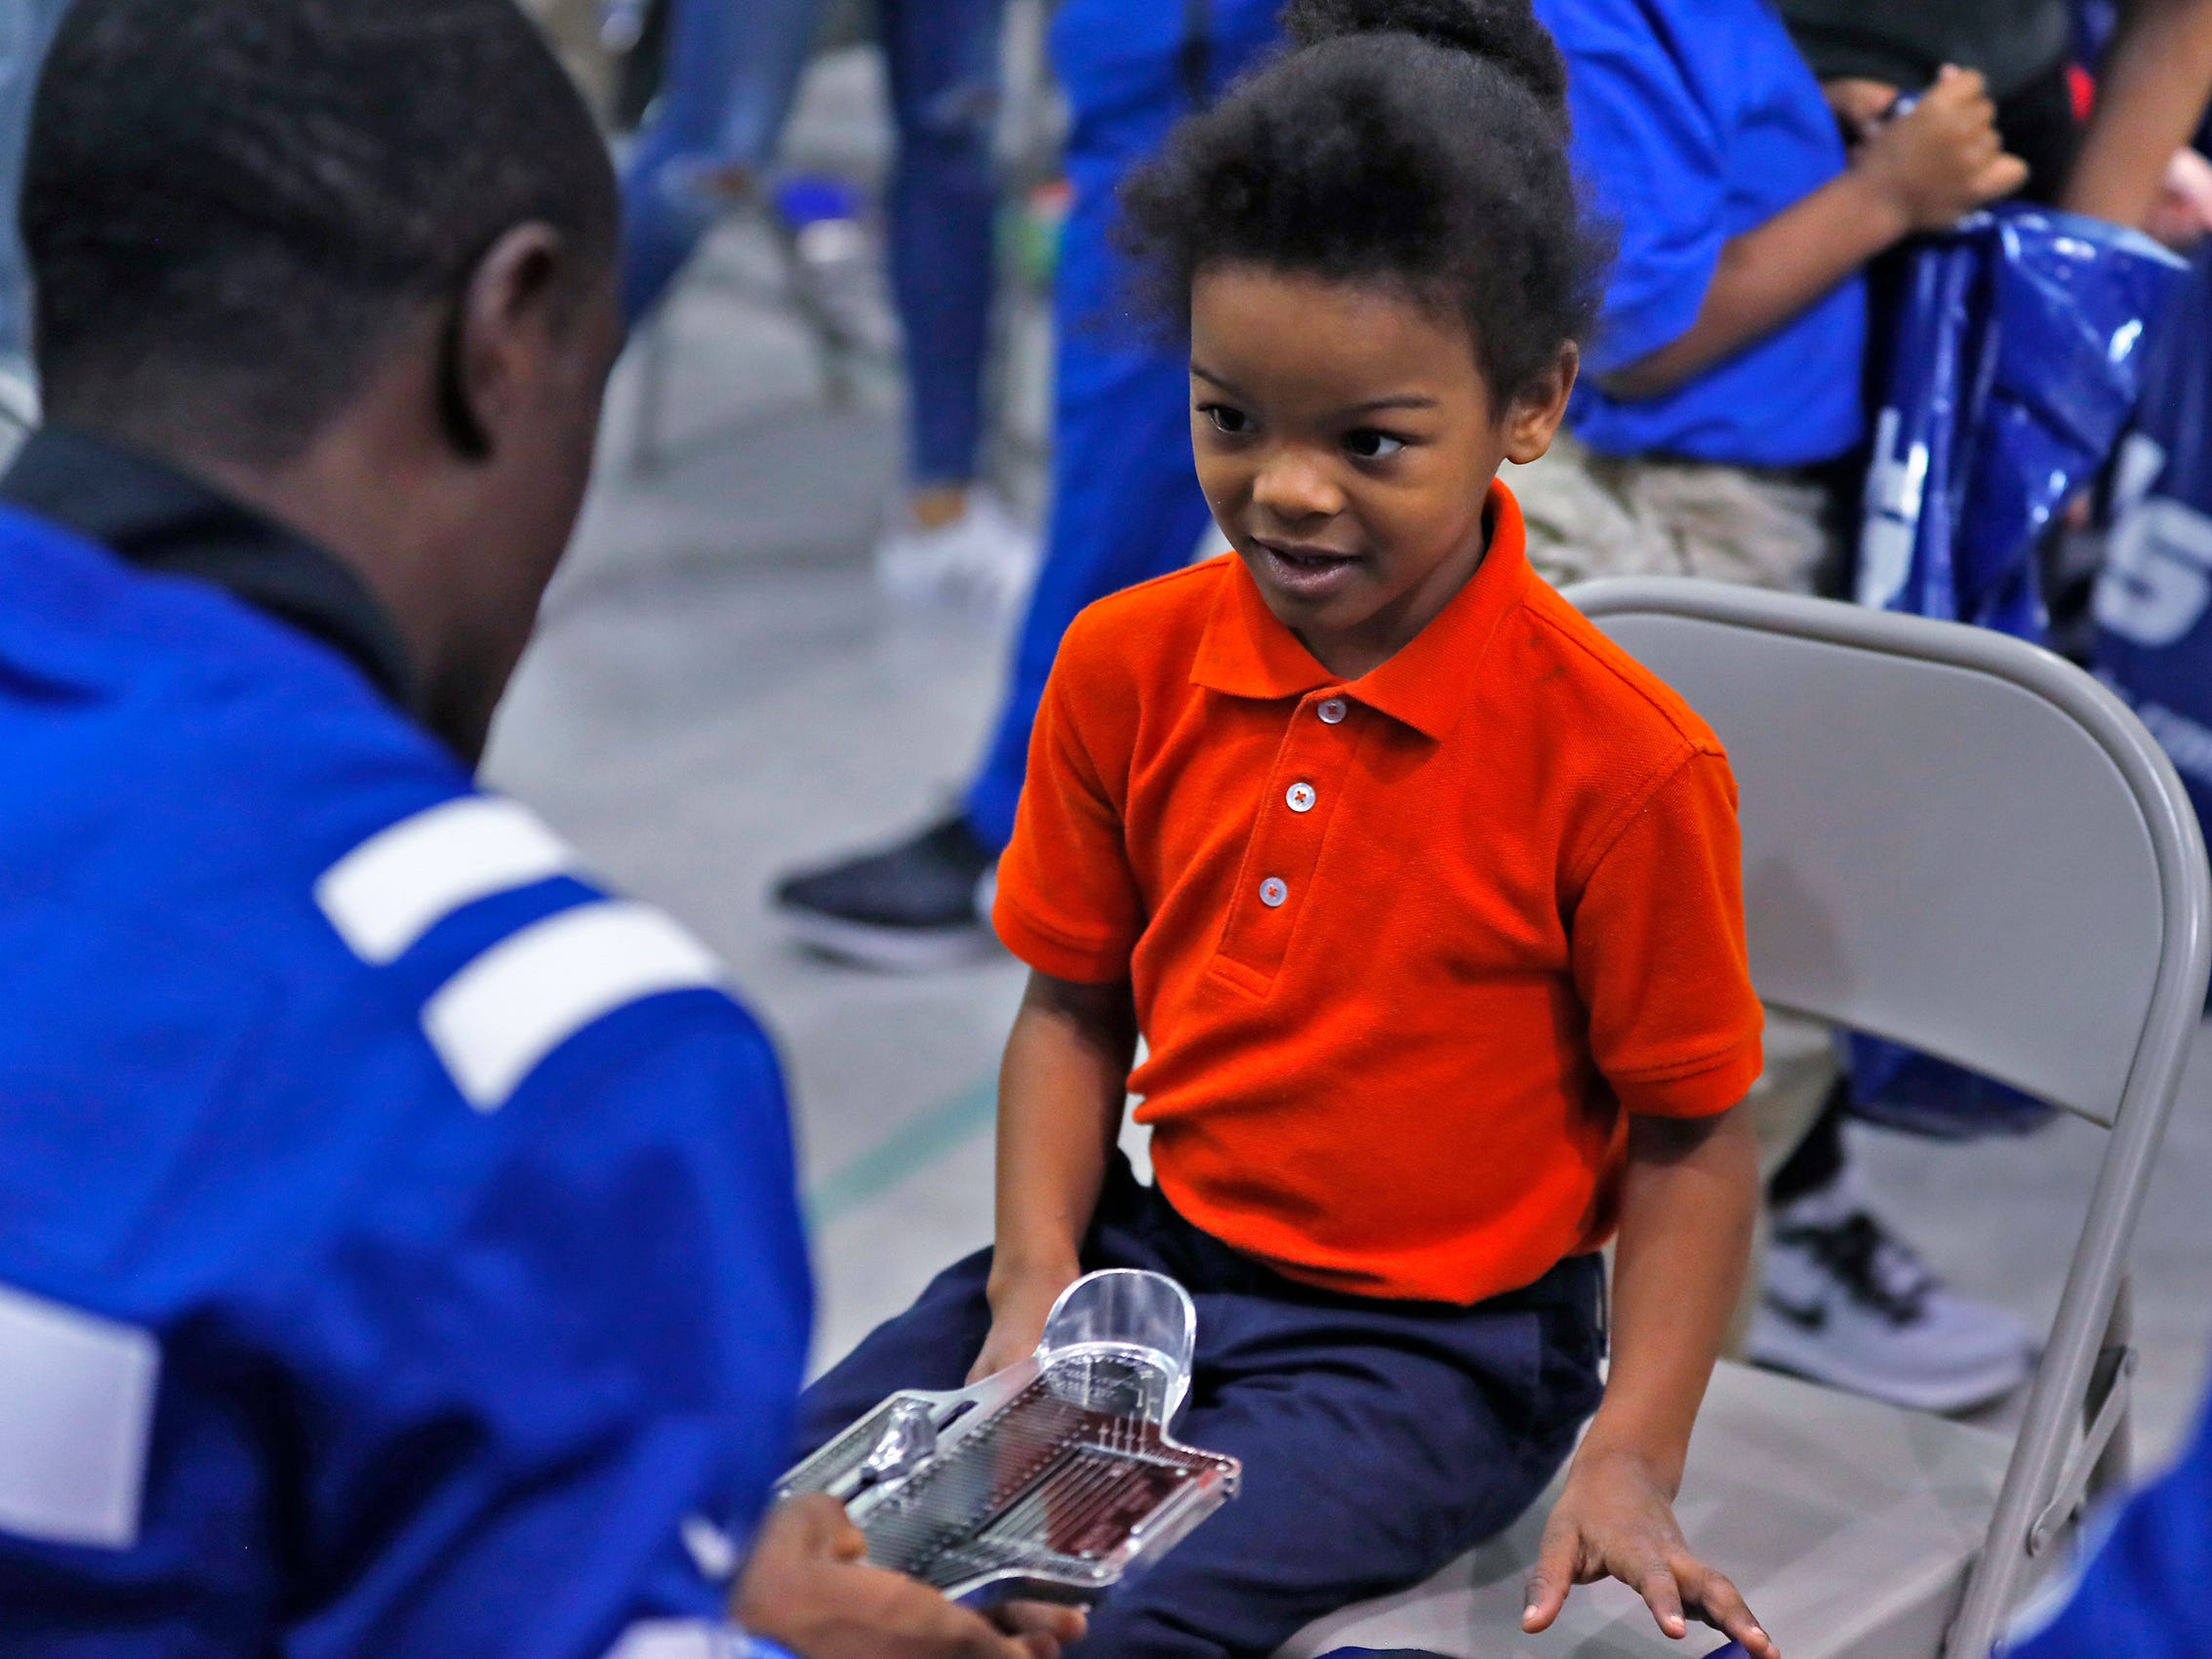 Shoe sizes are checked as kids receives new shoes at Brookside School 54, Monday, Dec. 3, 2018.  Colts players and staff joined as LIDS Sports and its parent company Genesco fit and gave new shoes, socks, hats, and snacks to students as part of the 13th annual Cold Feet, Warm Shoes event.